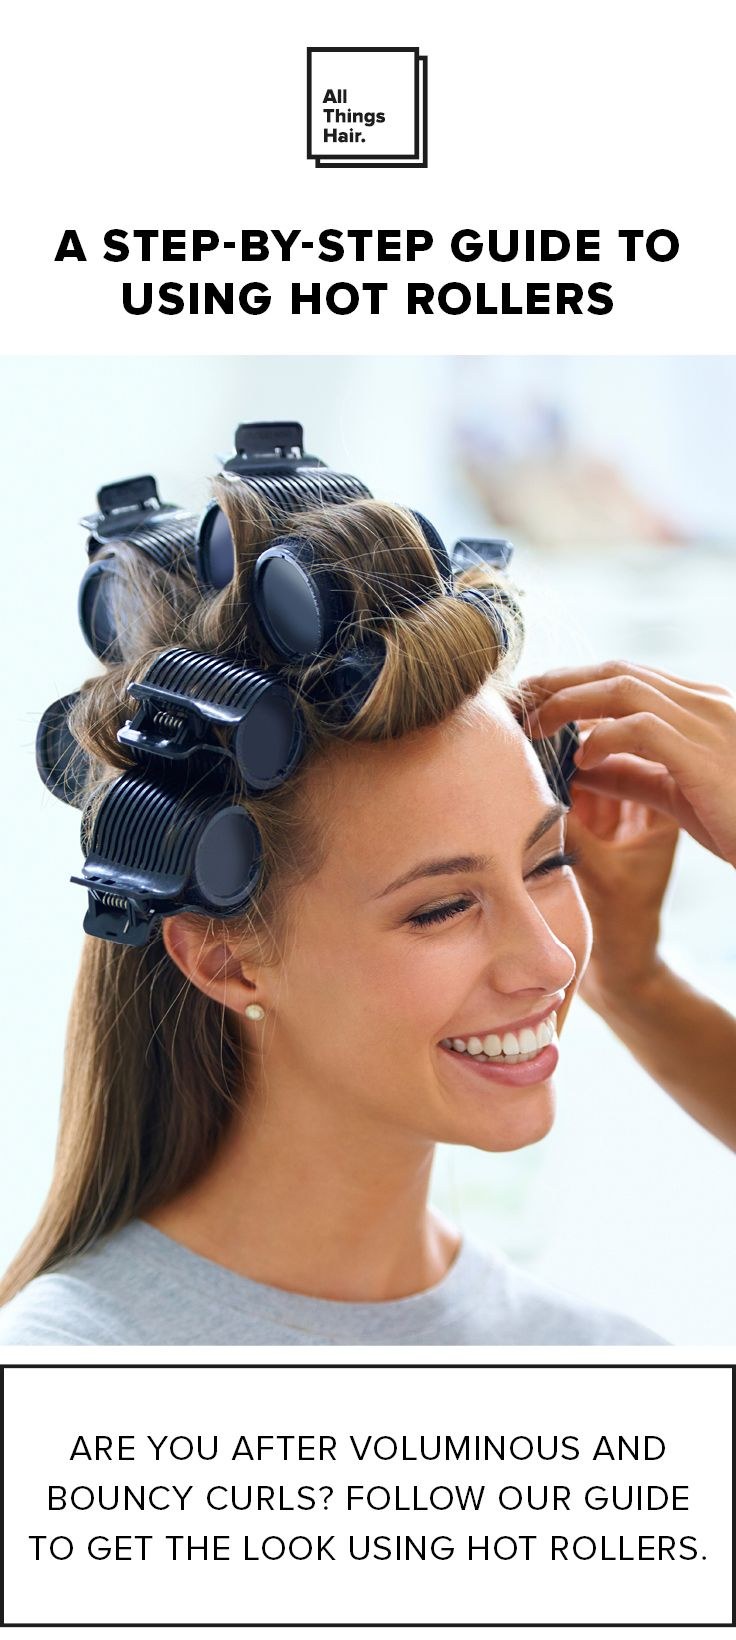 Hot rollers are great for giving you big, bouncy and beautiful hair! Read our full step-by-step guide and you could be flaunting luscious curls this weekend! #ad